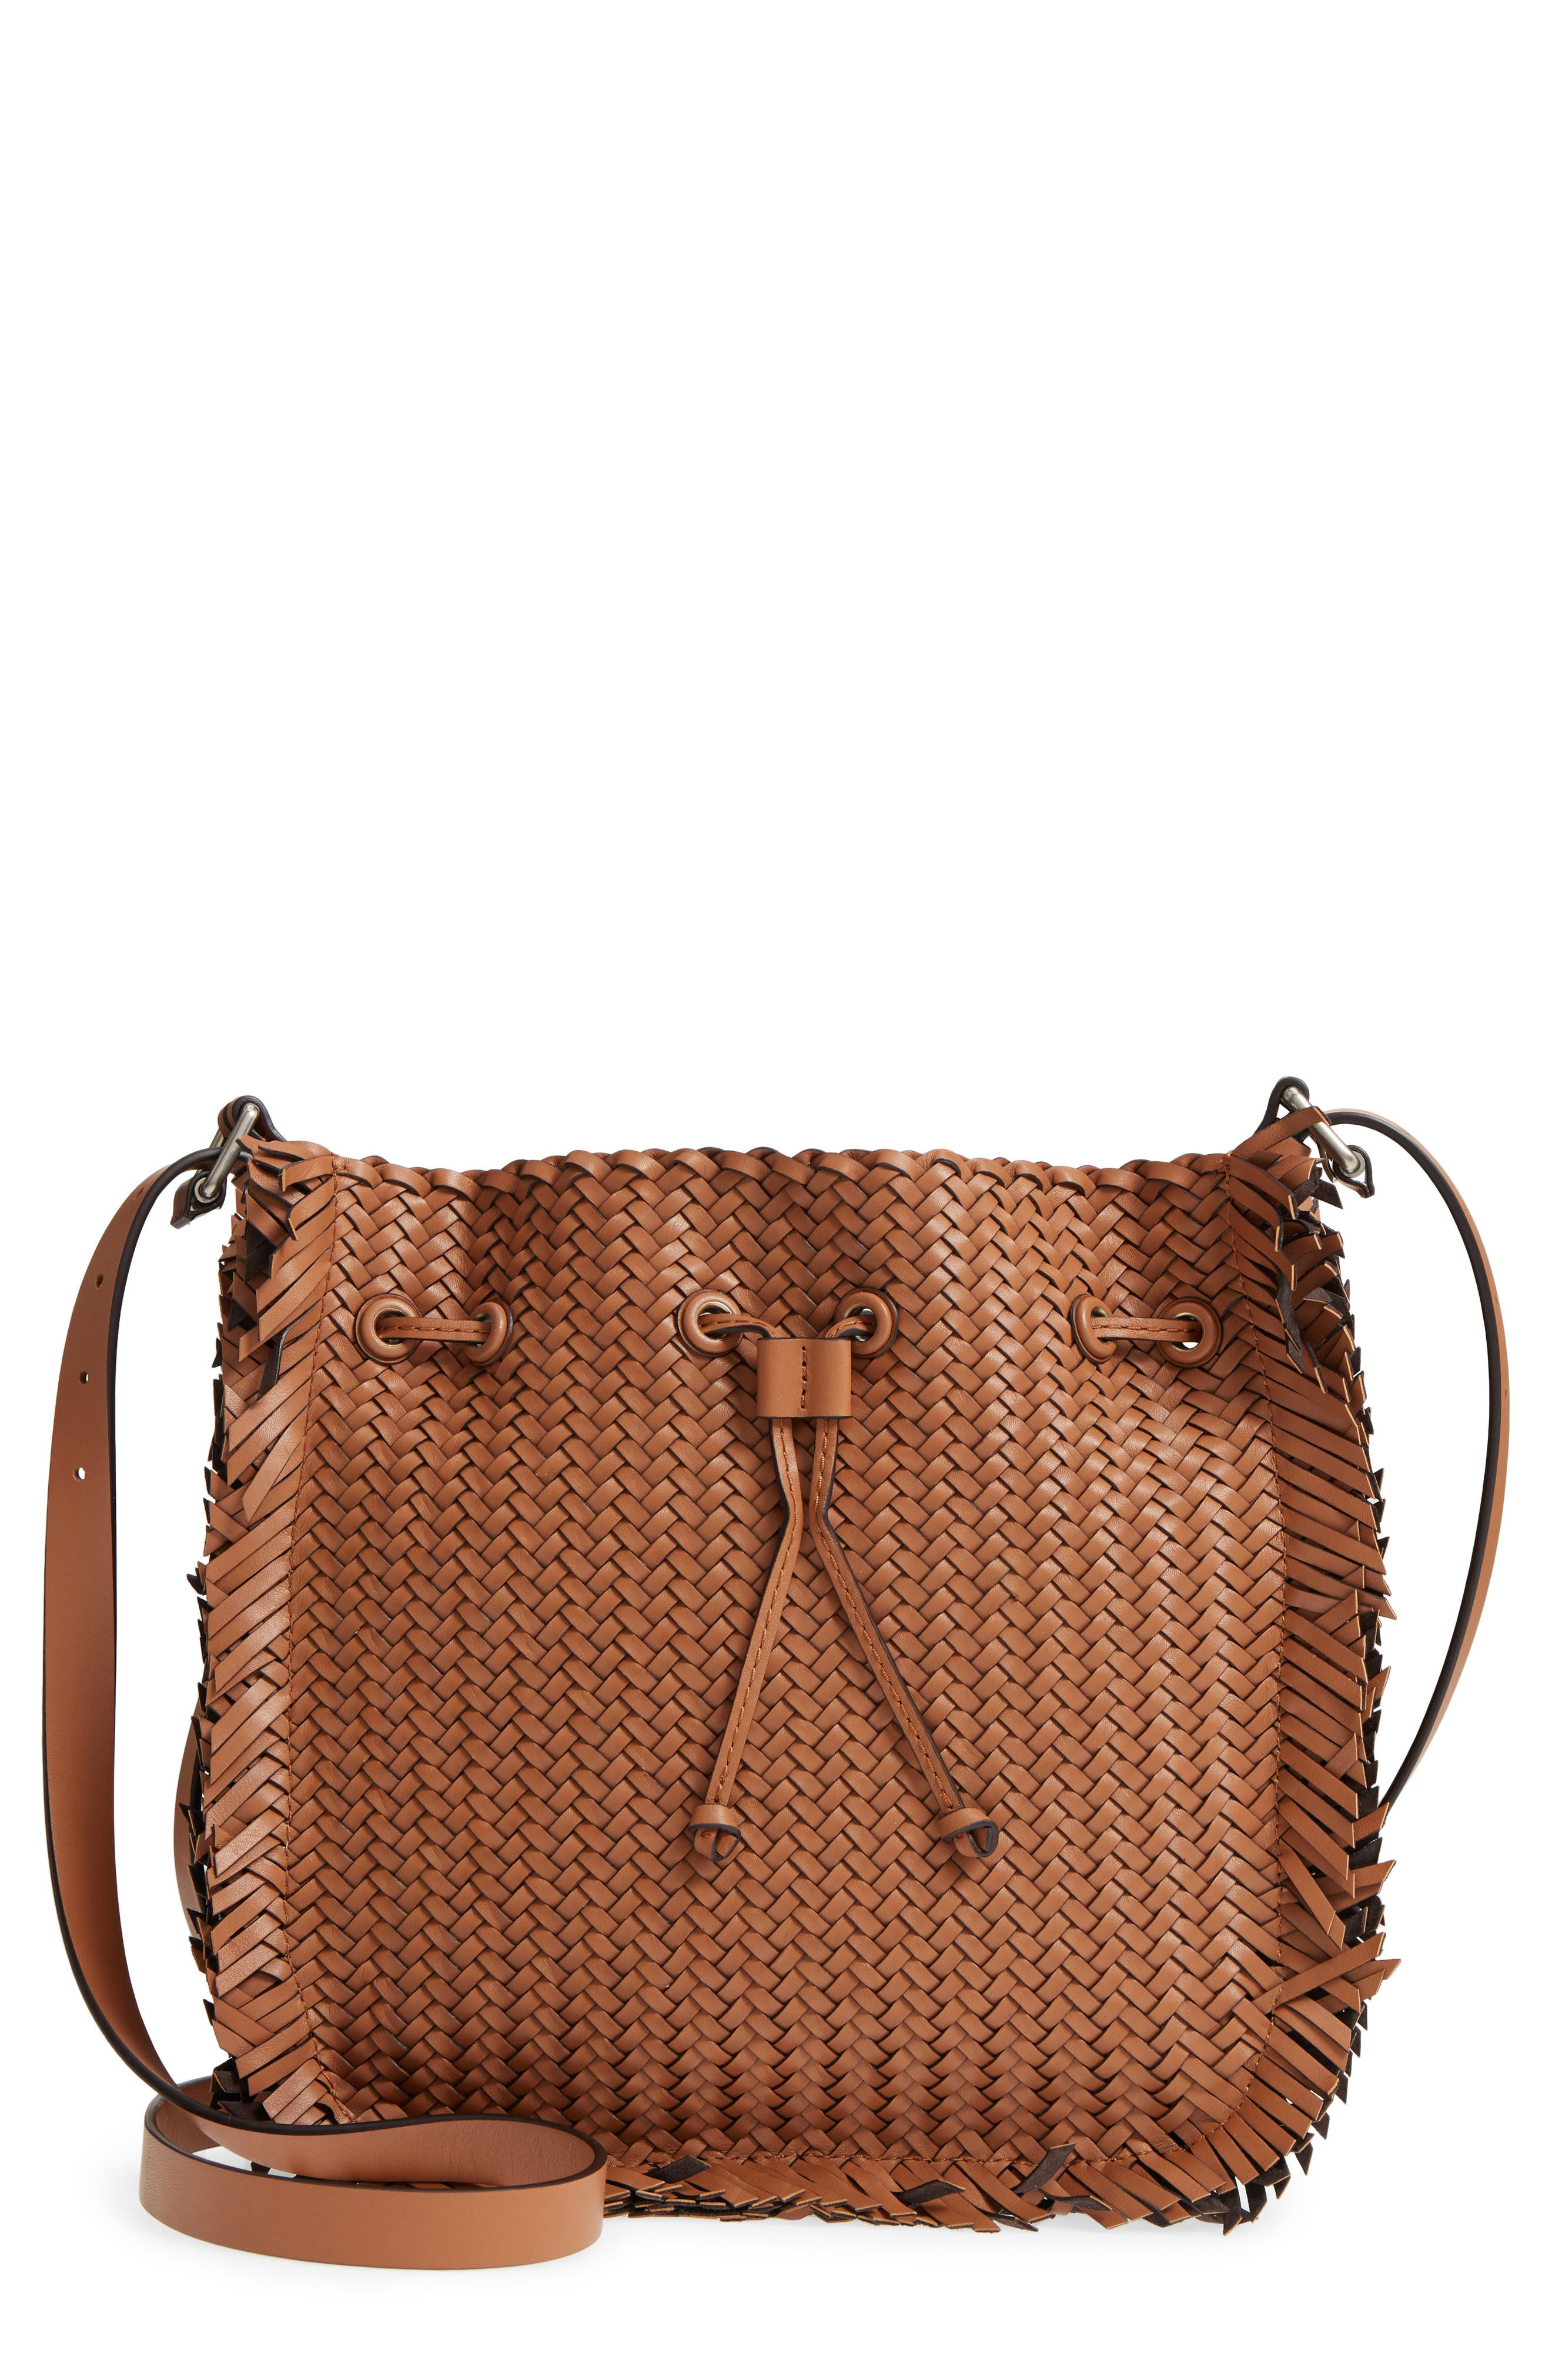 Maldives Woven Frayed Leather Crossbody Bag,                         Main,                         color, Acorn